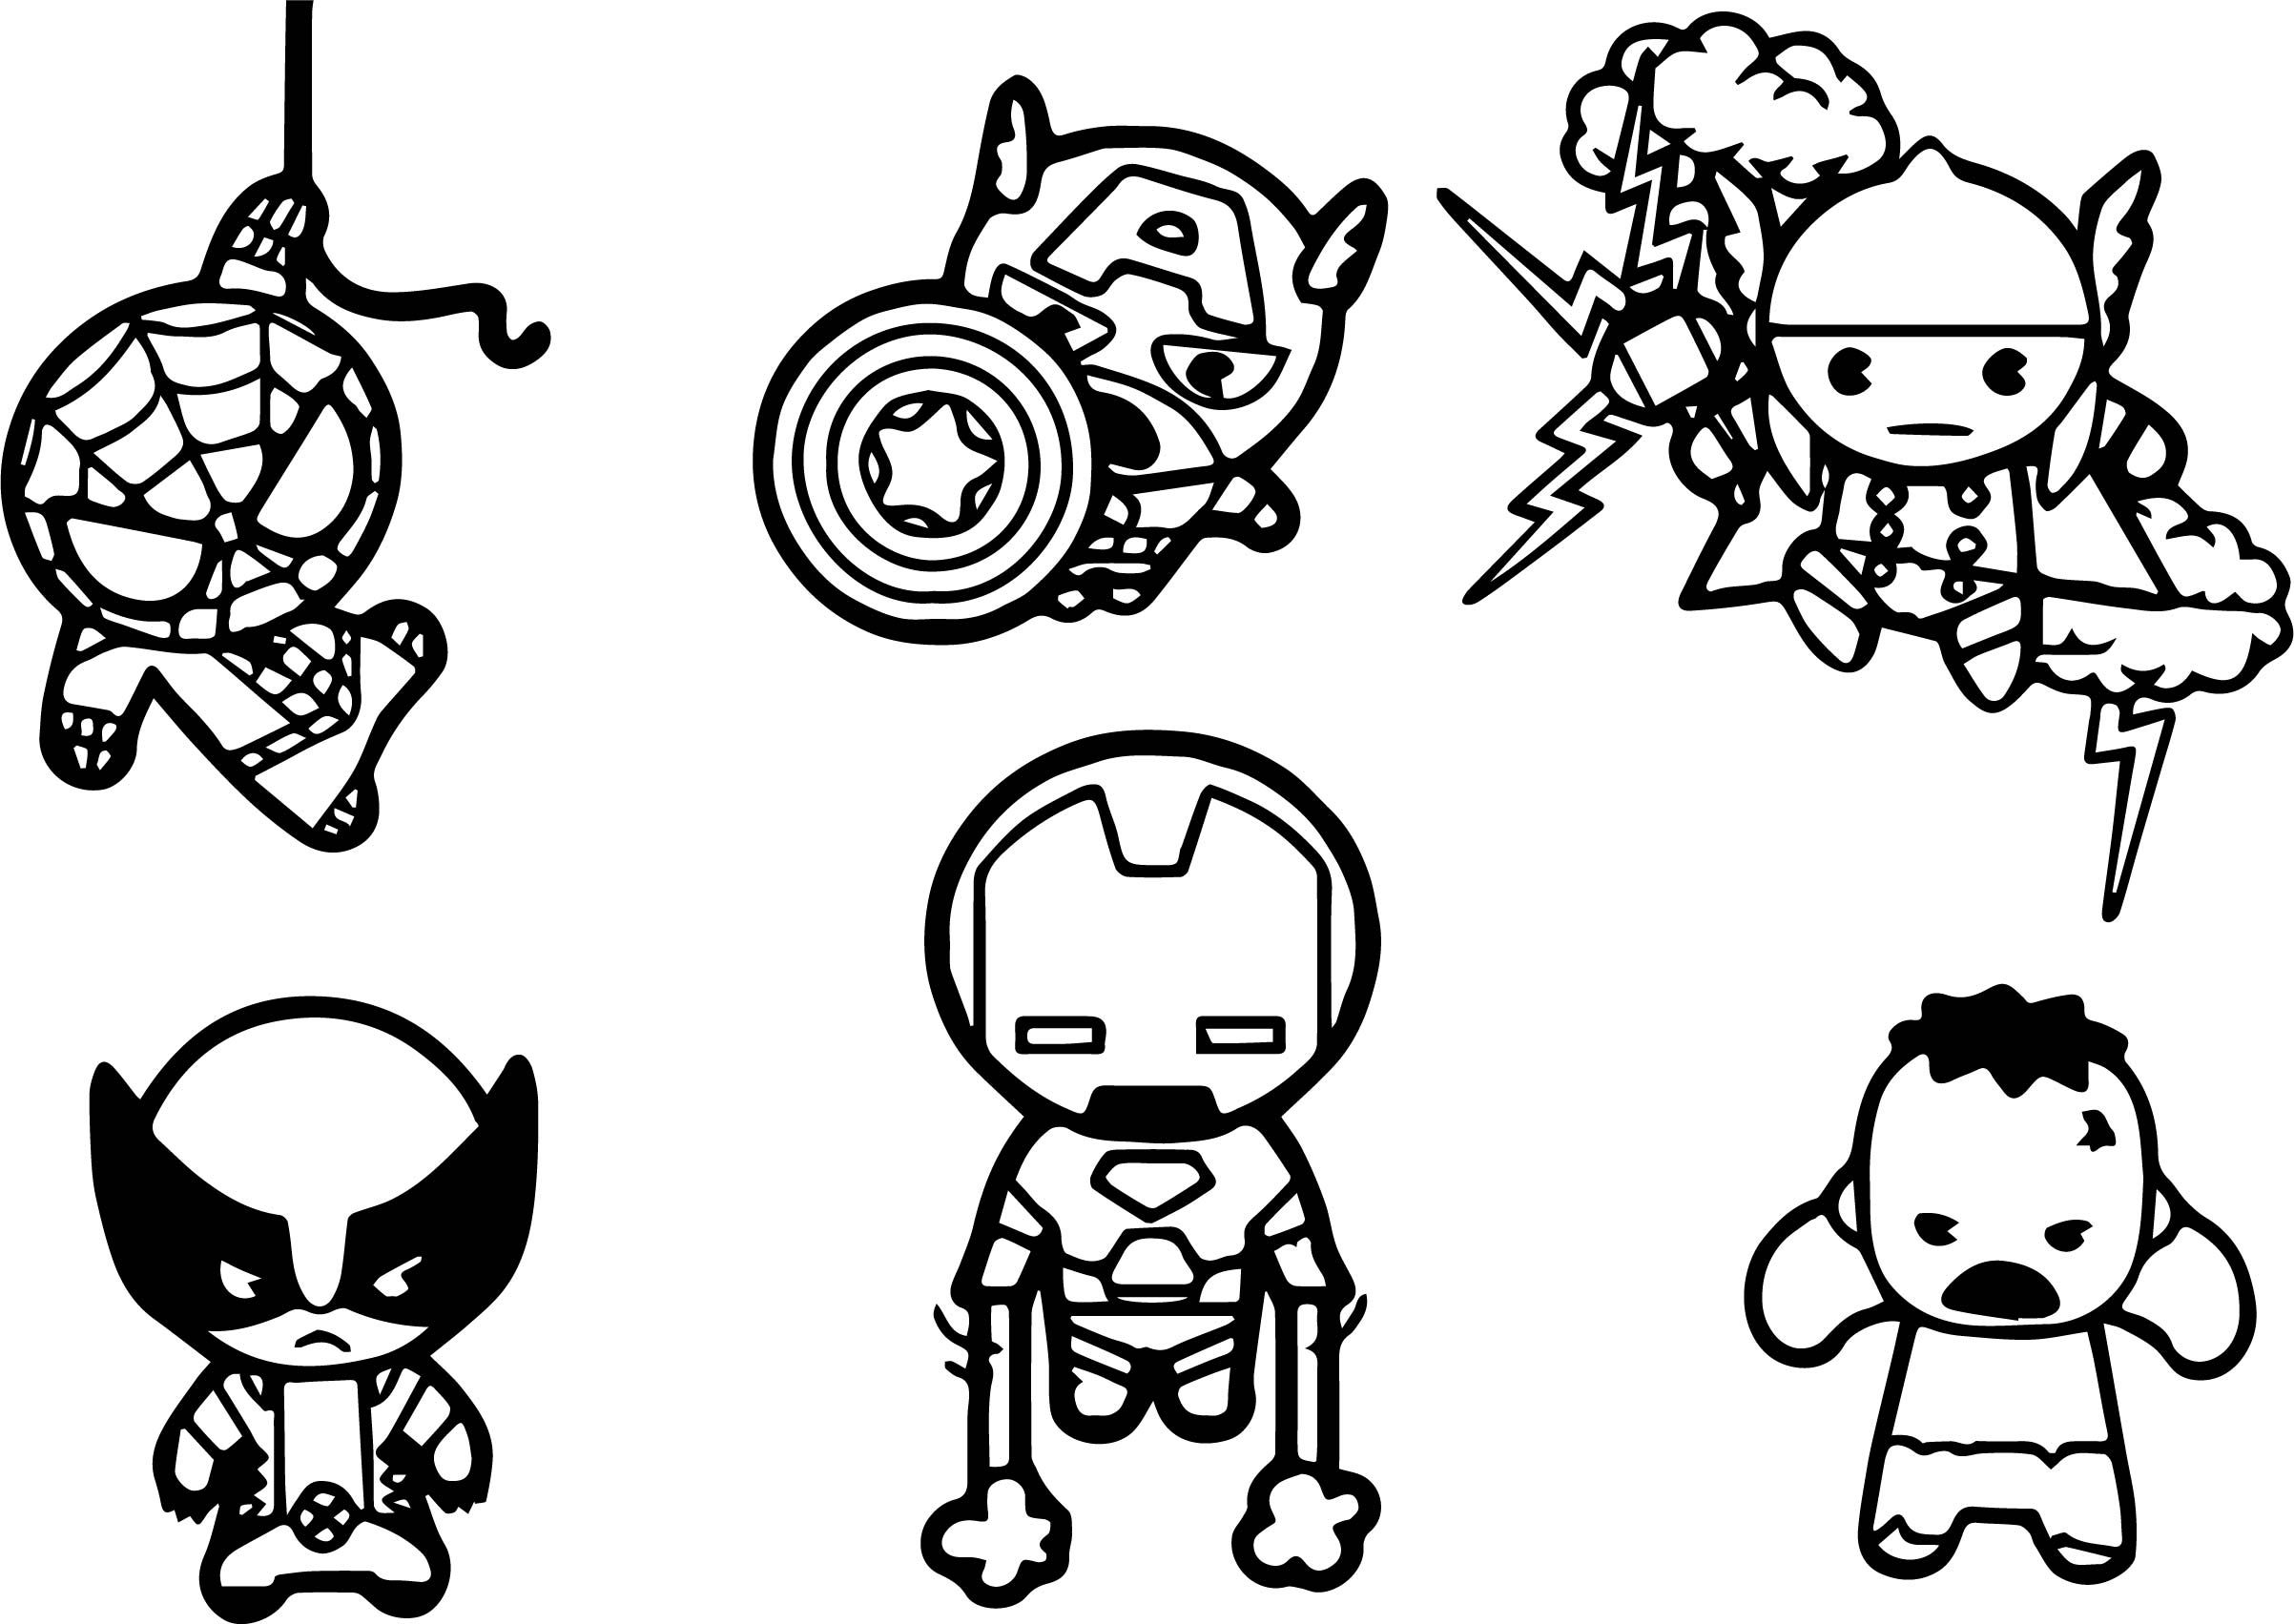 Avengers Baby Chibi Characters Coloring Page Wecoloringpage Com